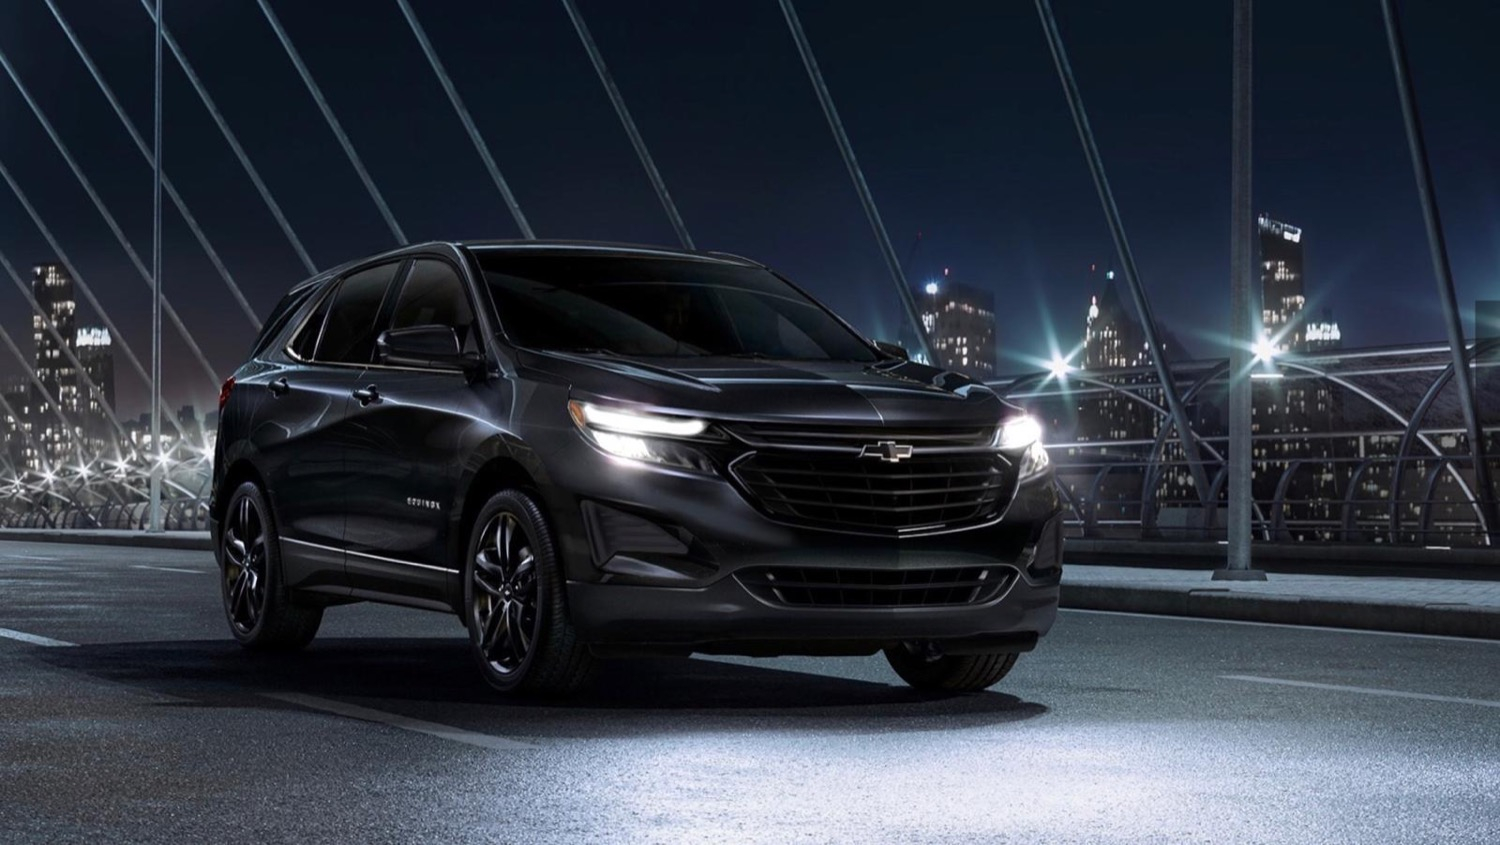 2021 chevrolet equinox oil capacity options owner